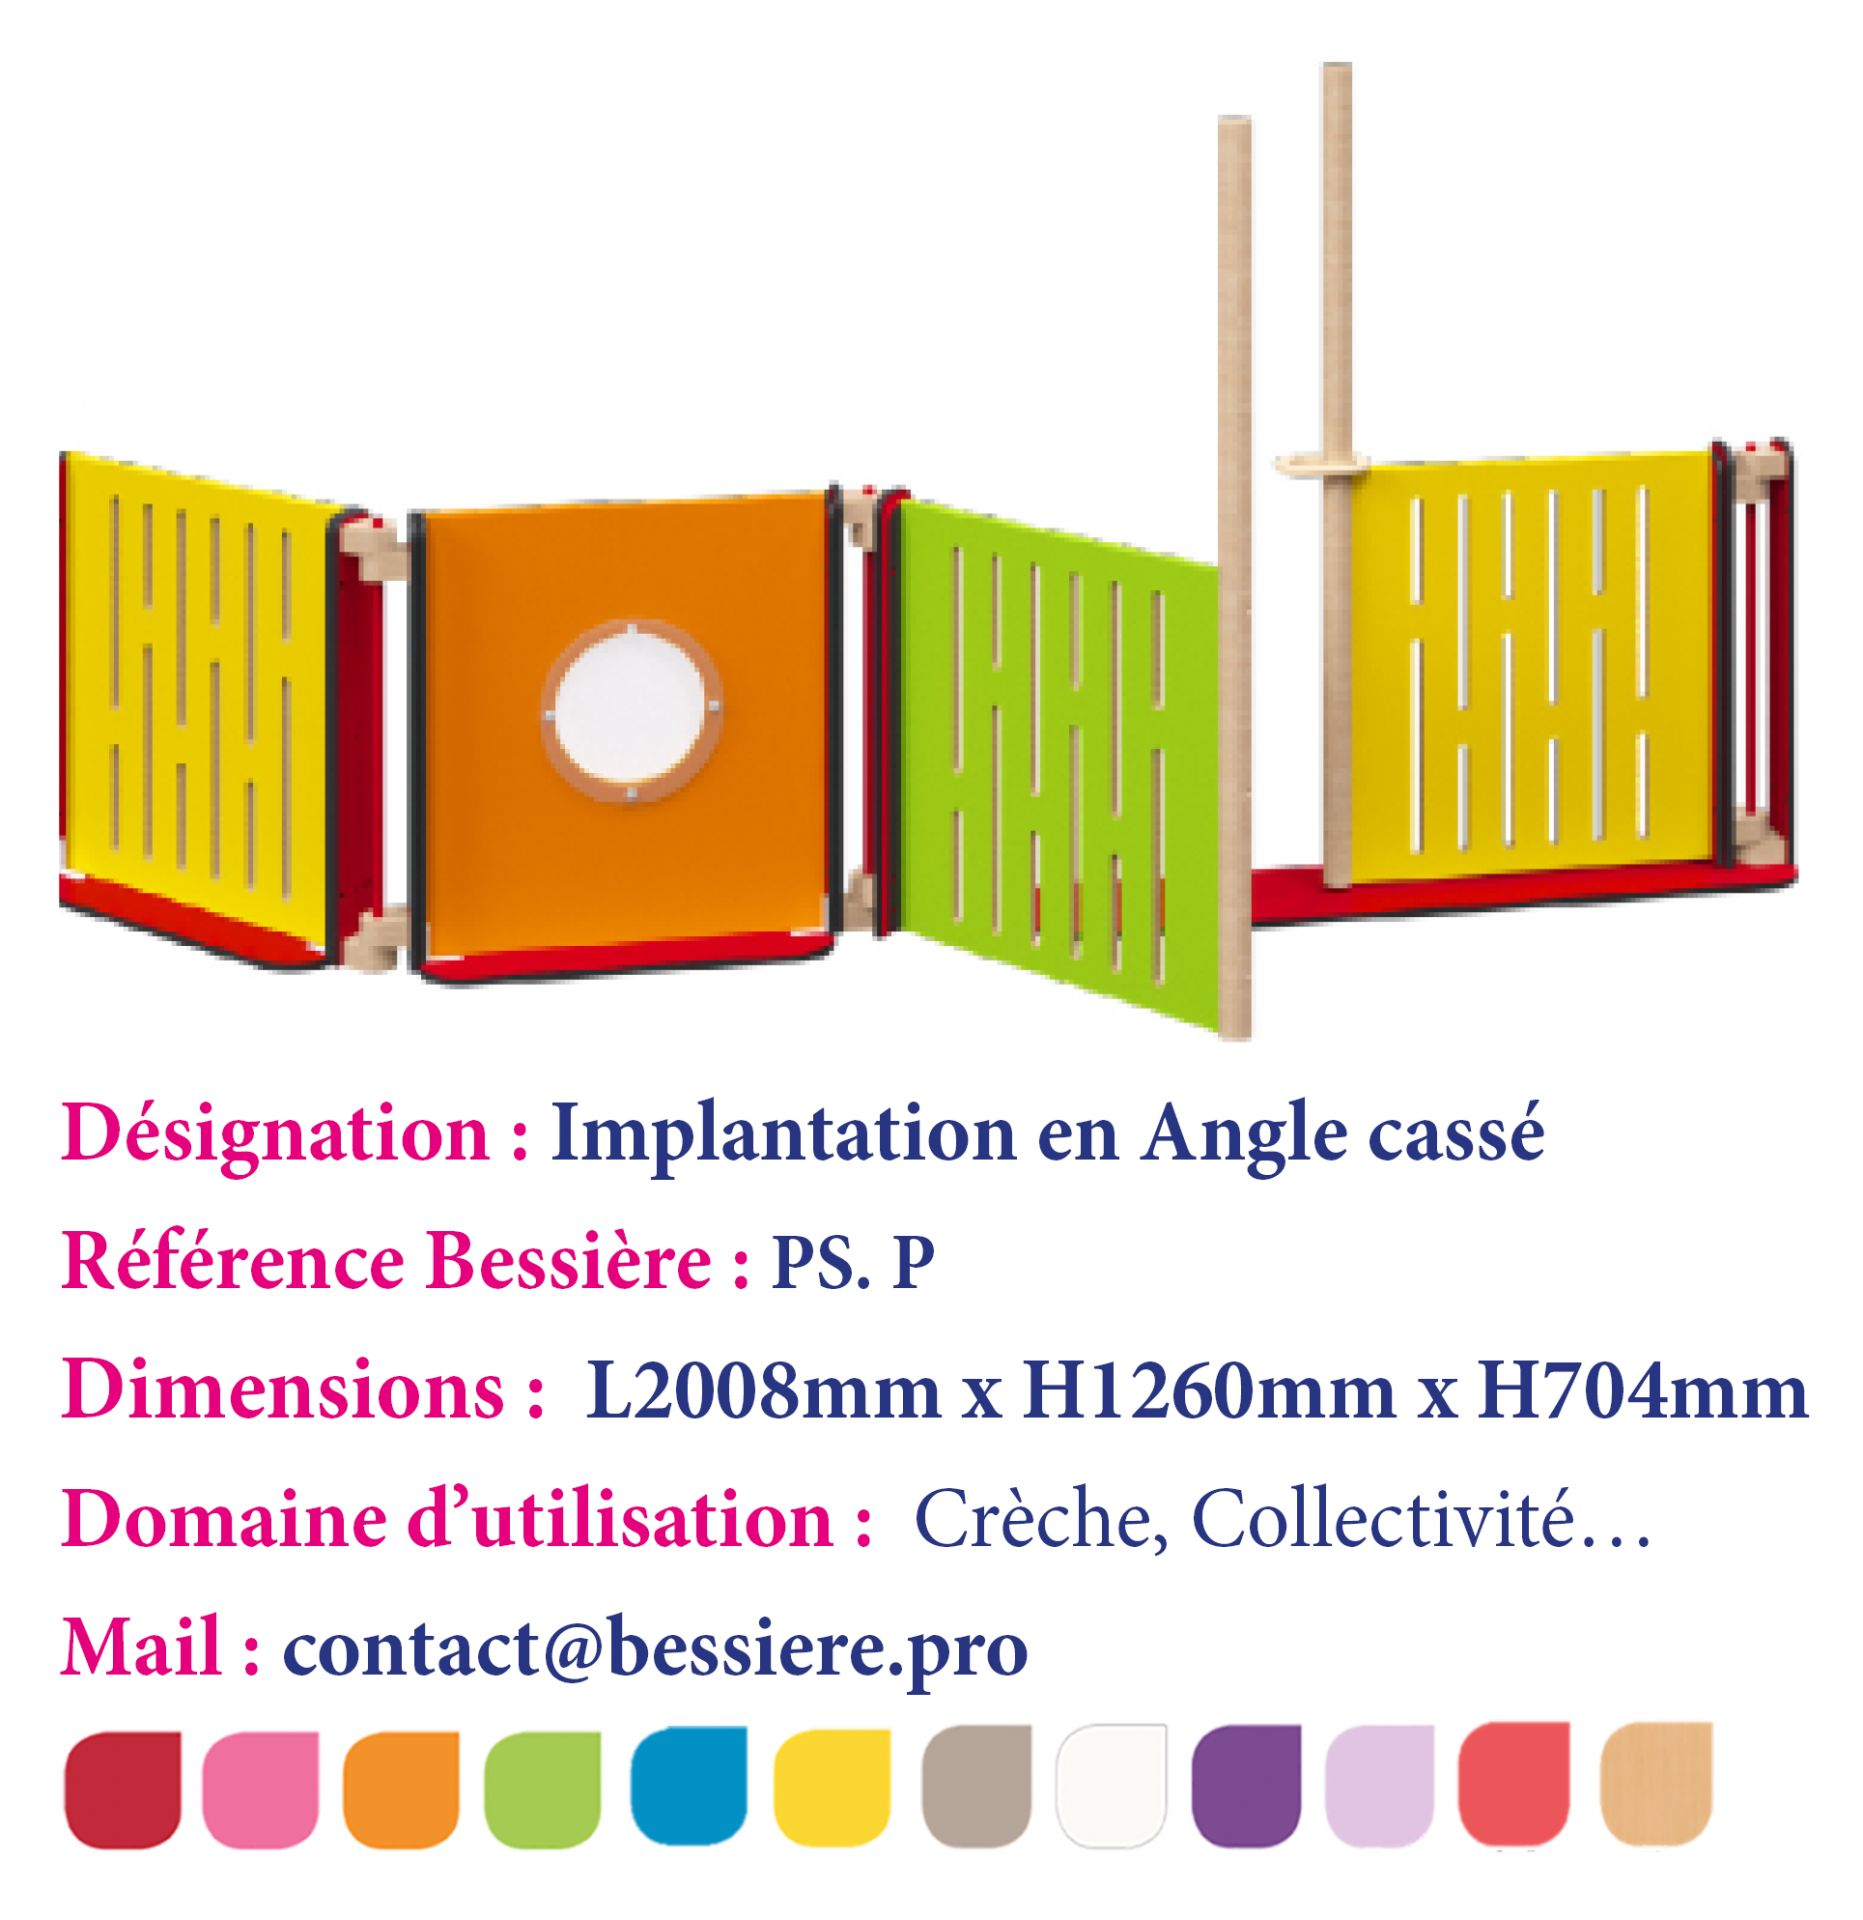 Implantation en angle cassé